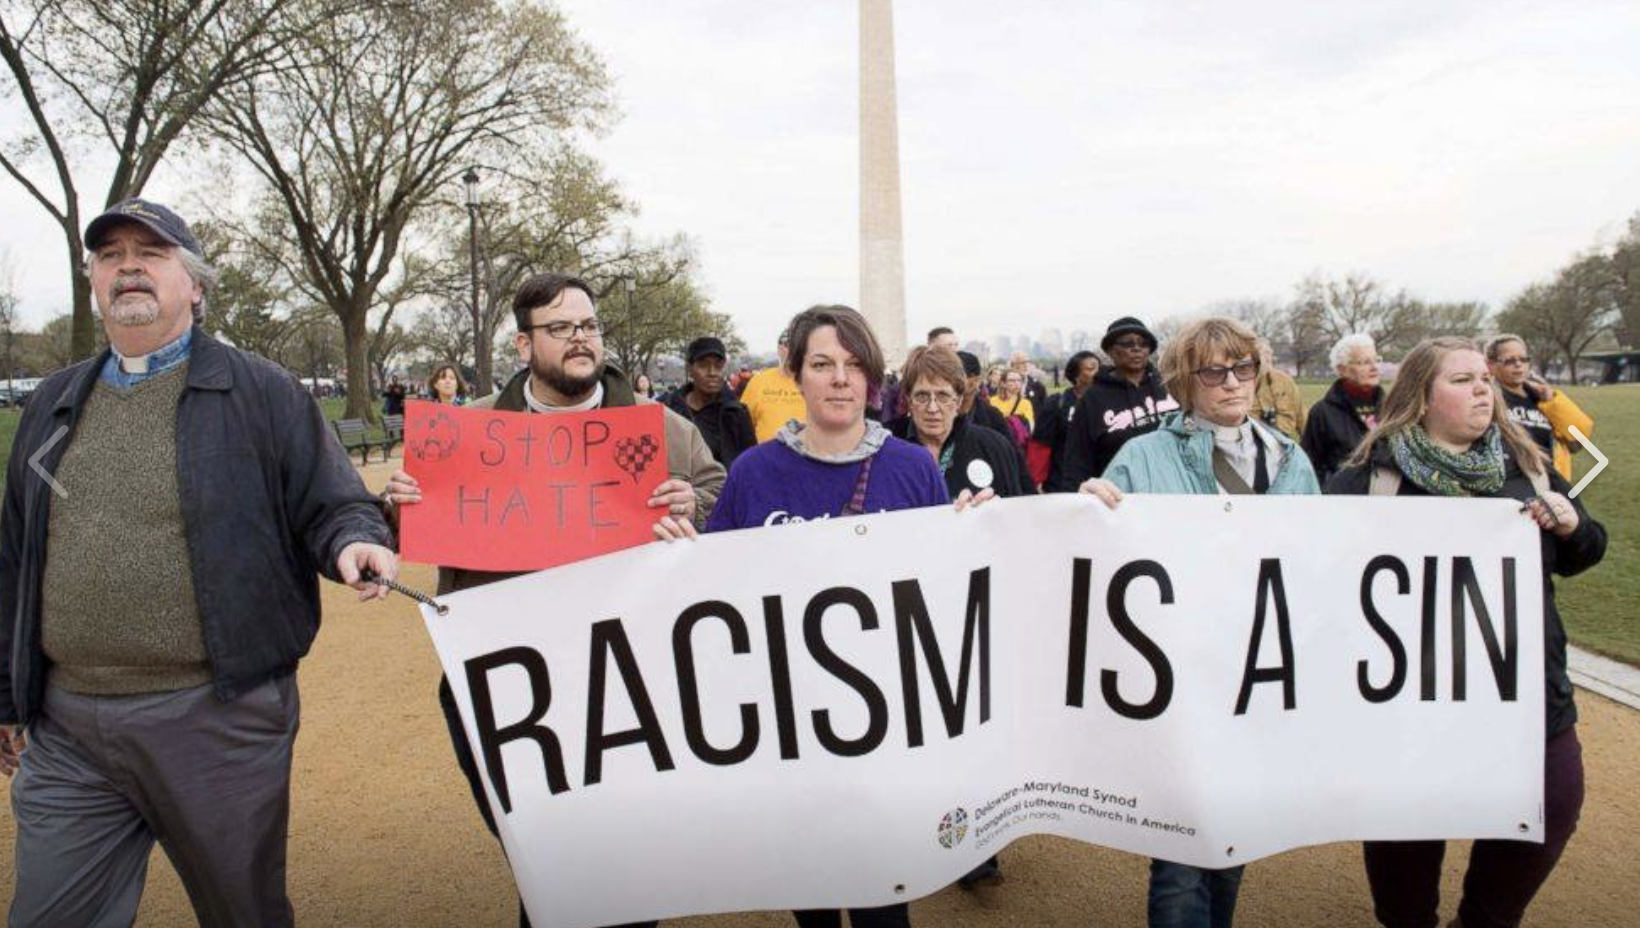 Synod leaders marching in Washington D.C. with a banner that reads 'Racism is a sin.'